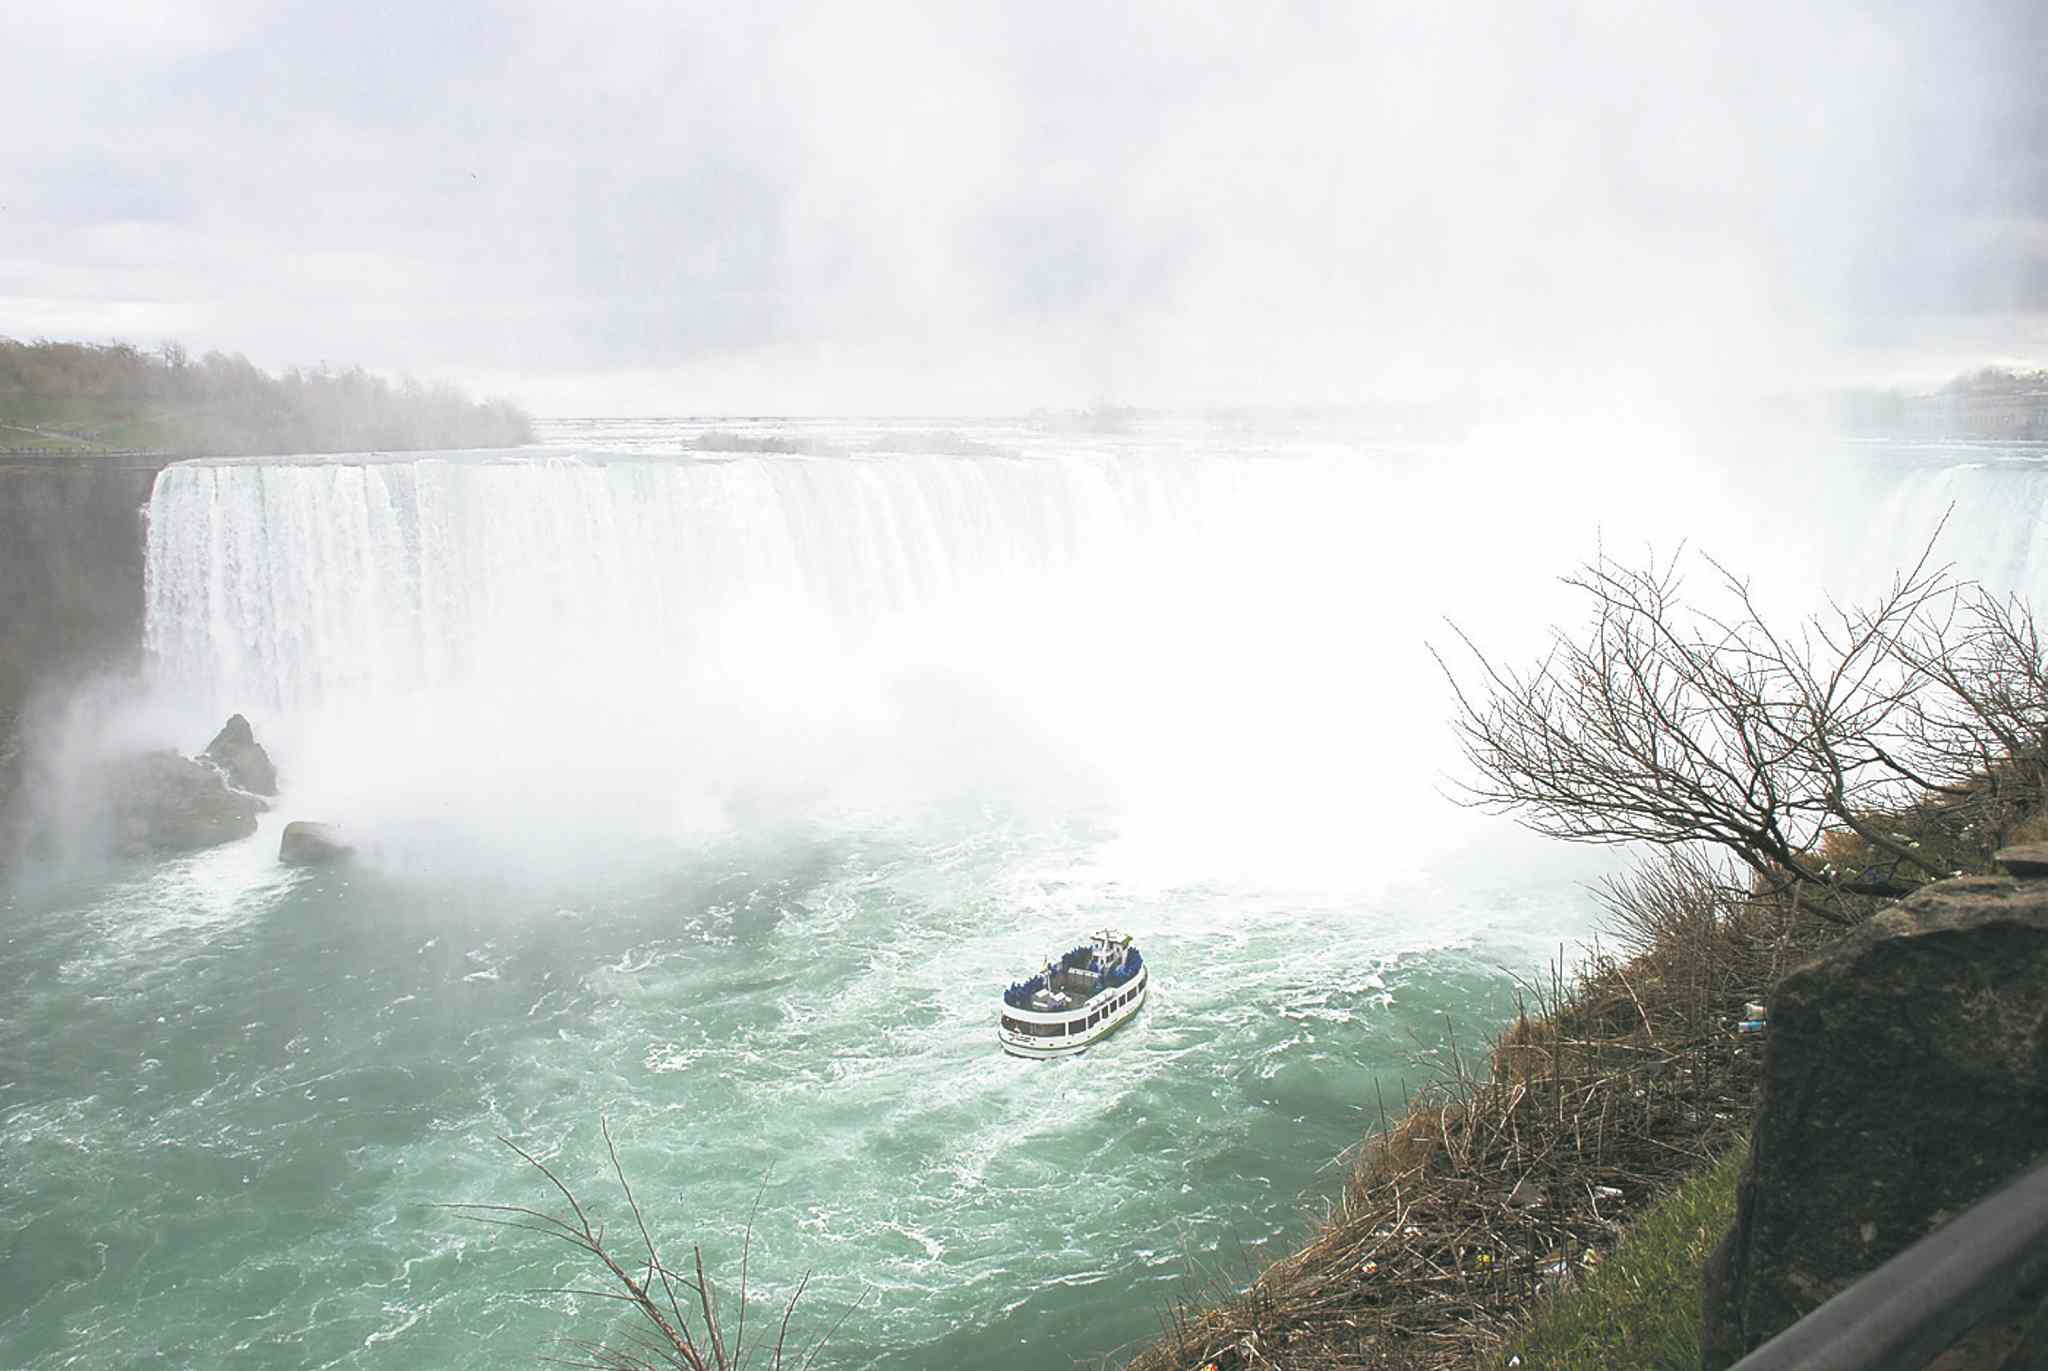 Chinese tourists visit major Canadian cities and our top natural attractions like Niagara Falls, but not in great numbers.